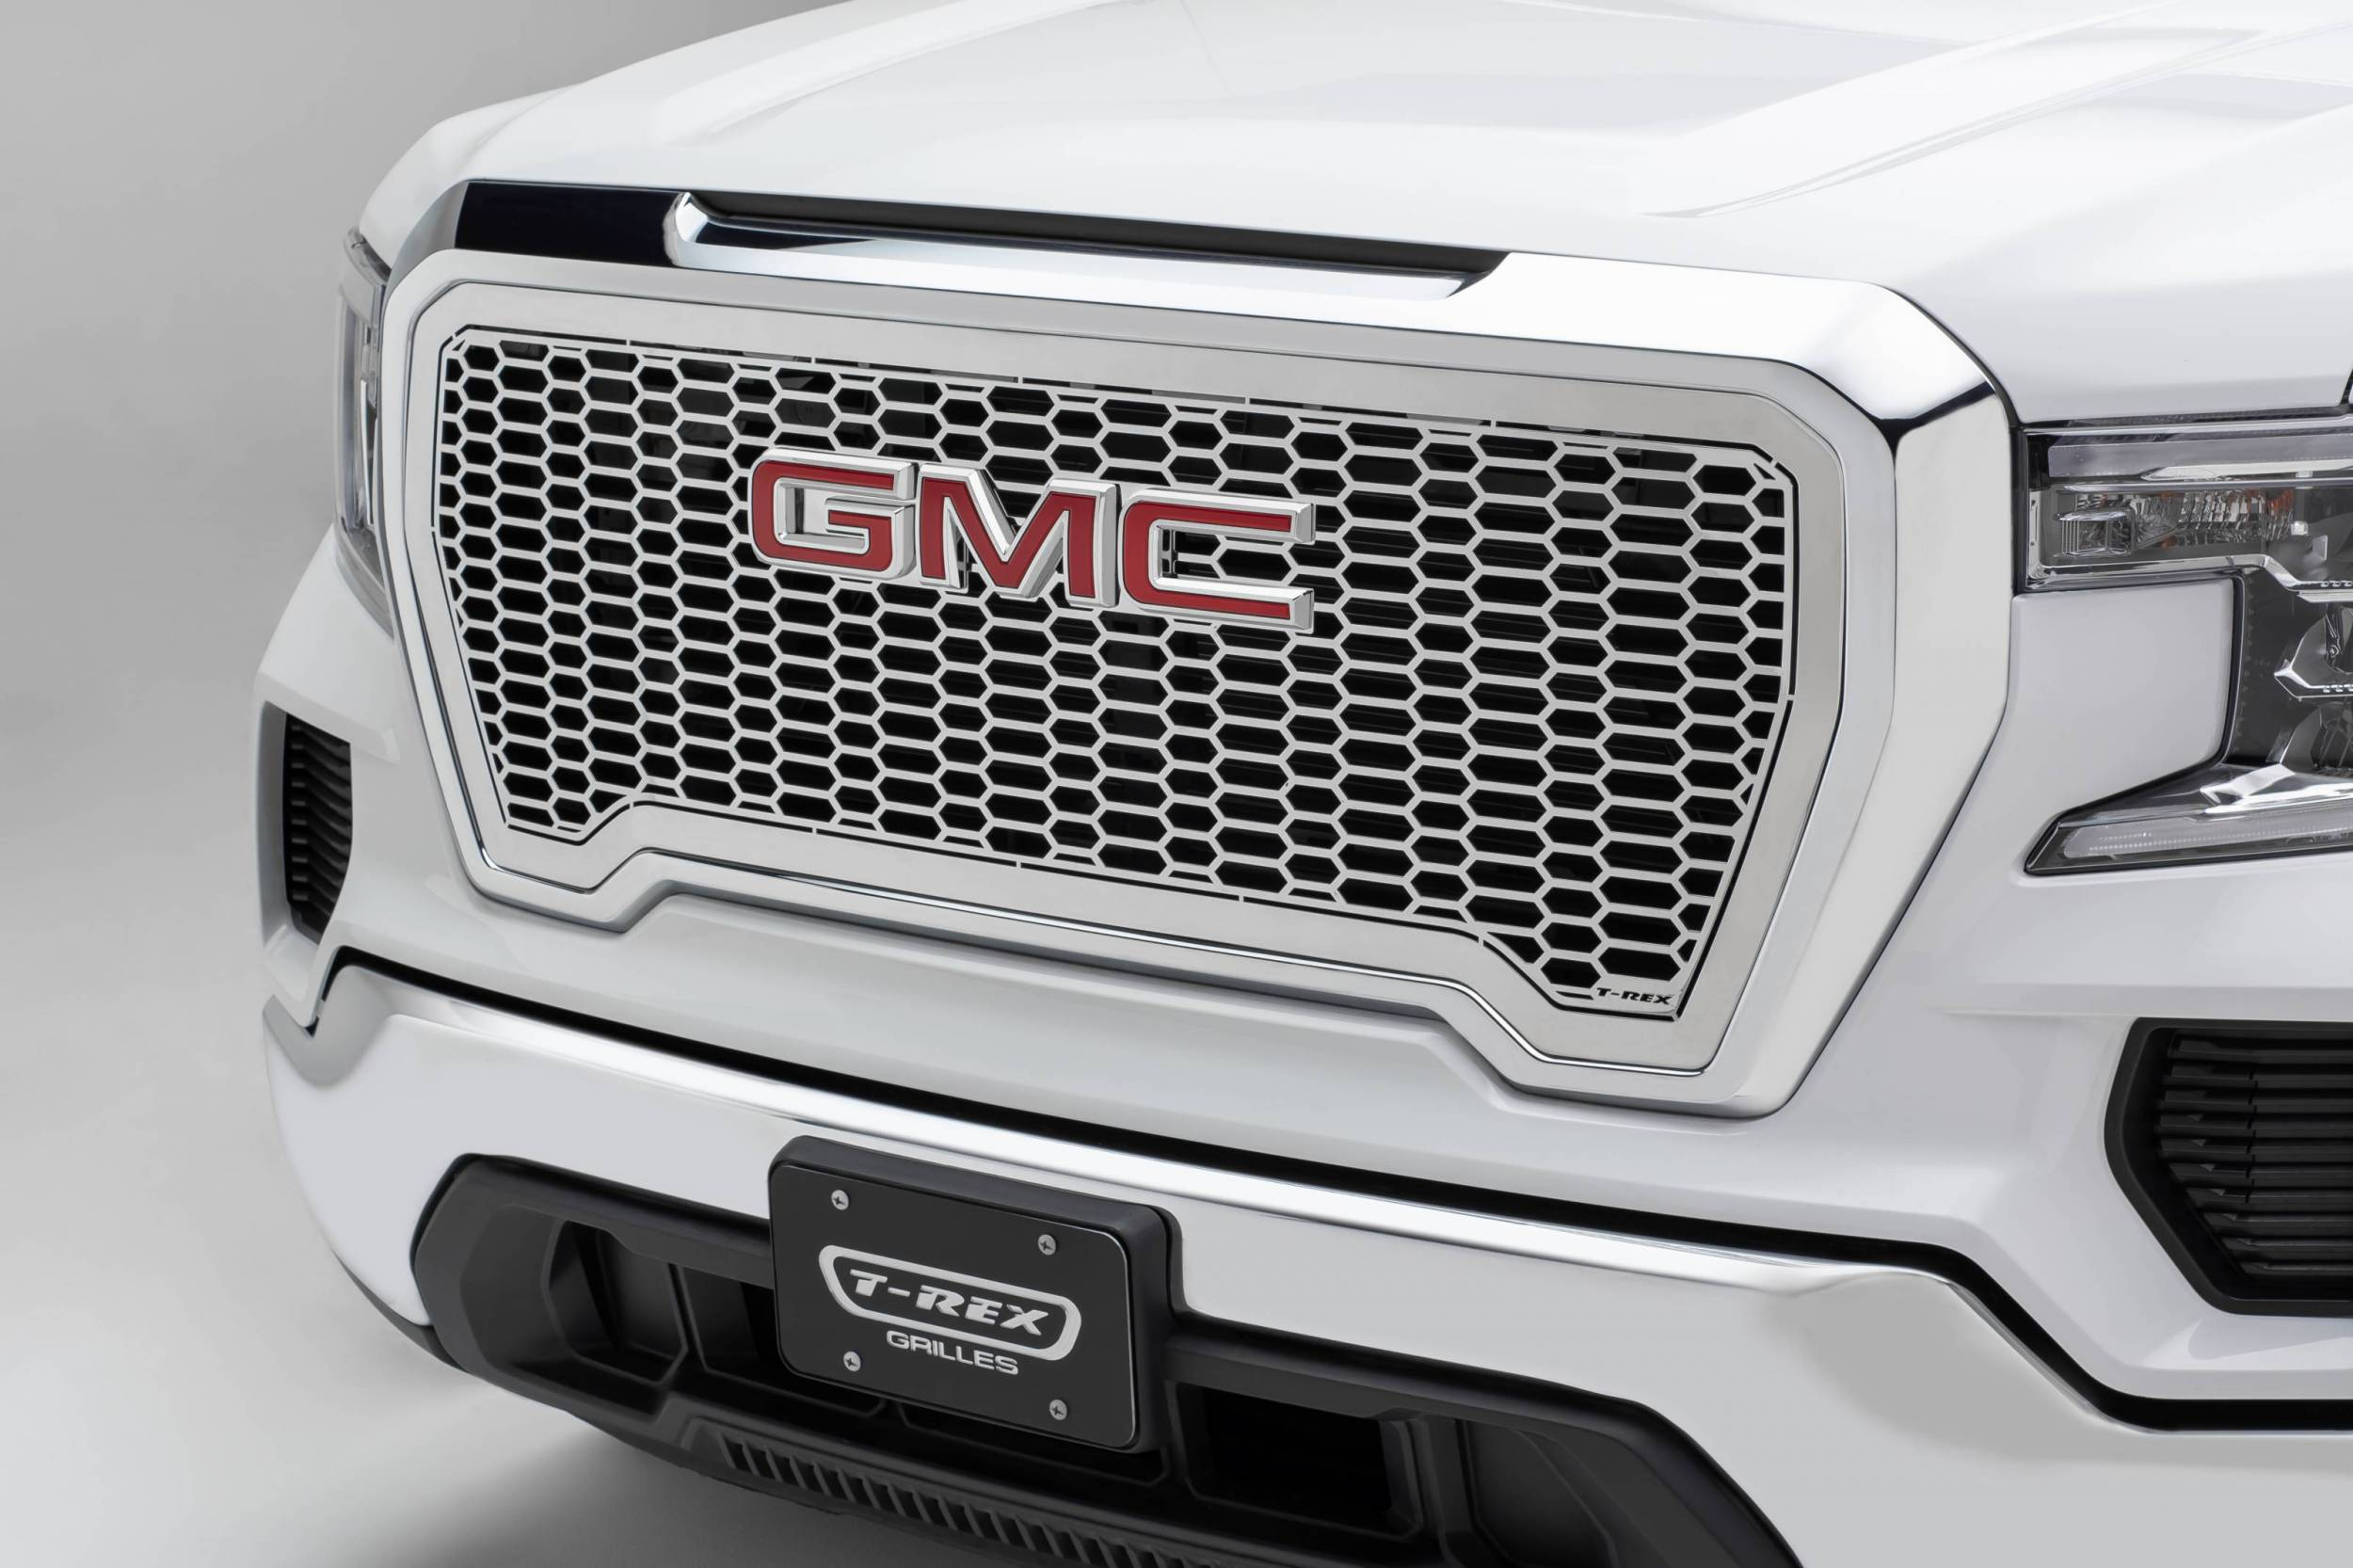 T-REX Grilles - 2019-2021 GMC Sierra 1500 Laser X Grille, Polished, Stainless Steel, 1 Pc, Insert - PN #7712280